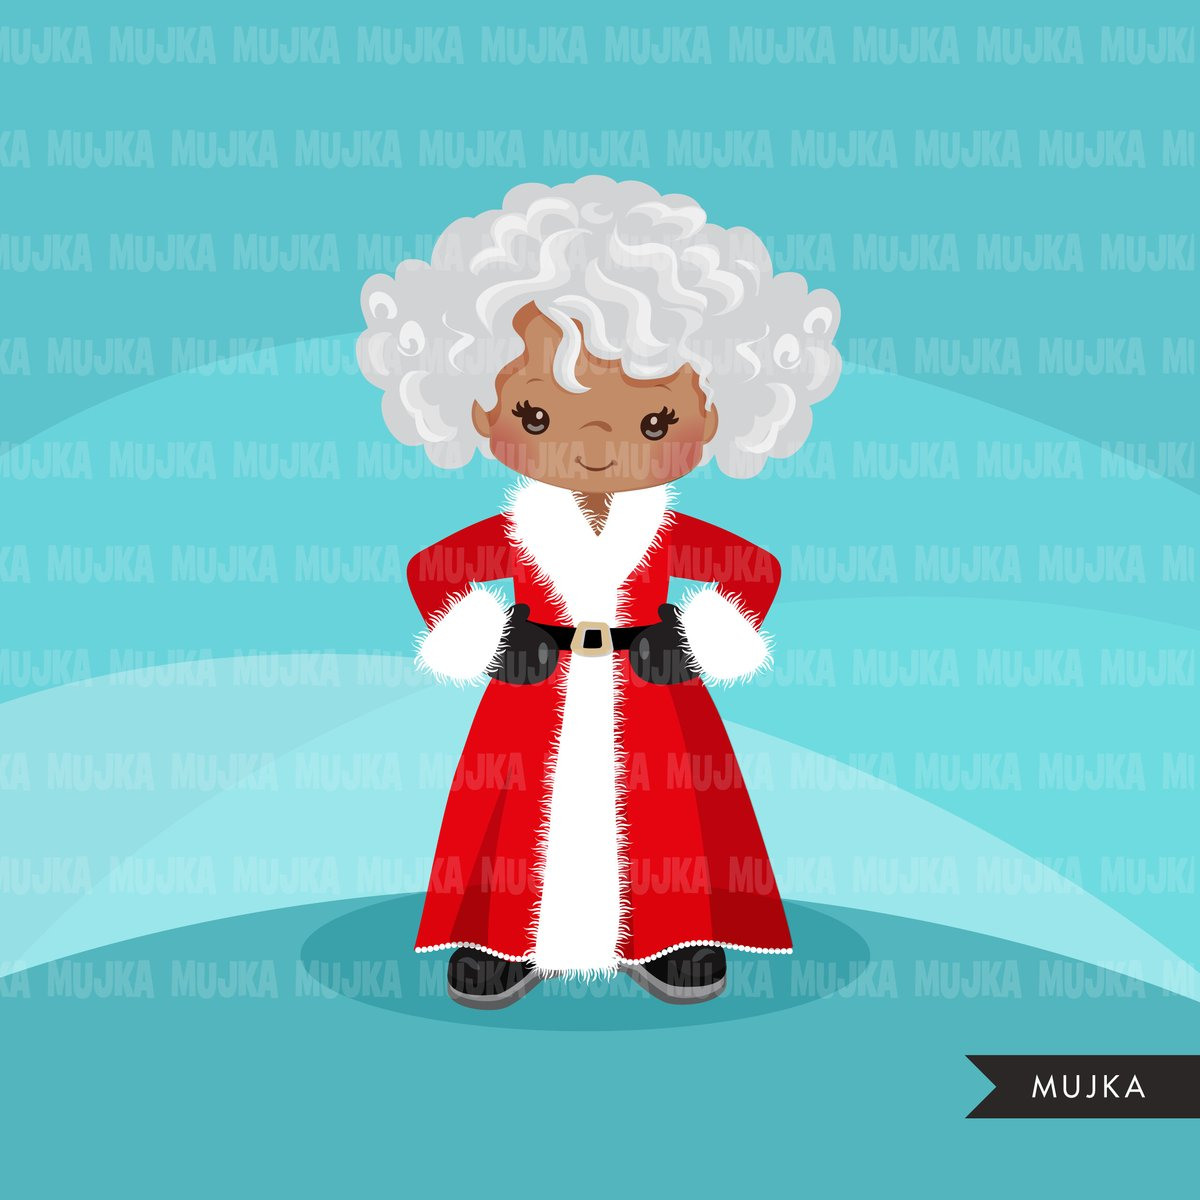 Black Mrs Santa Clipart, Christmas Graphics, Santa\'s wife, noel  illustrations, scrapbooking, commercial use Holiday graphics.